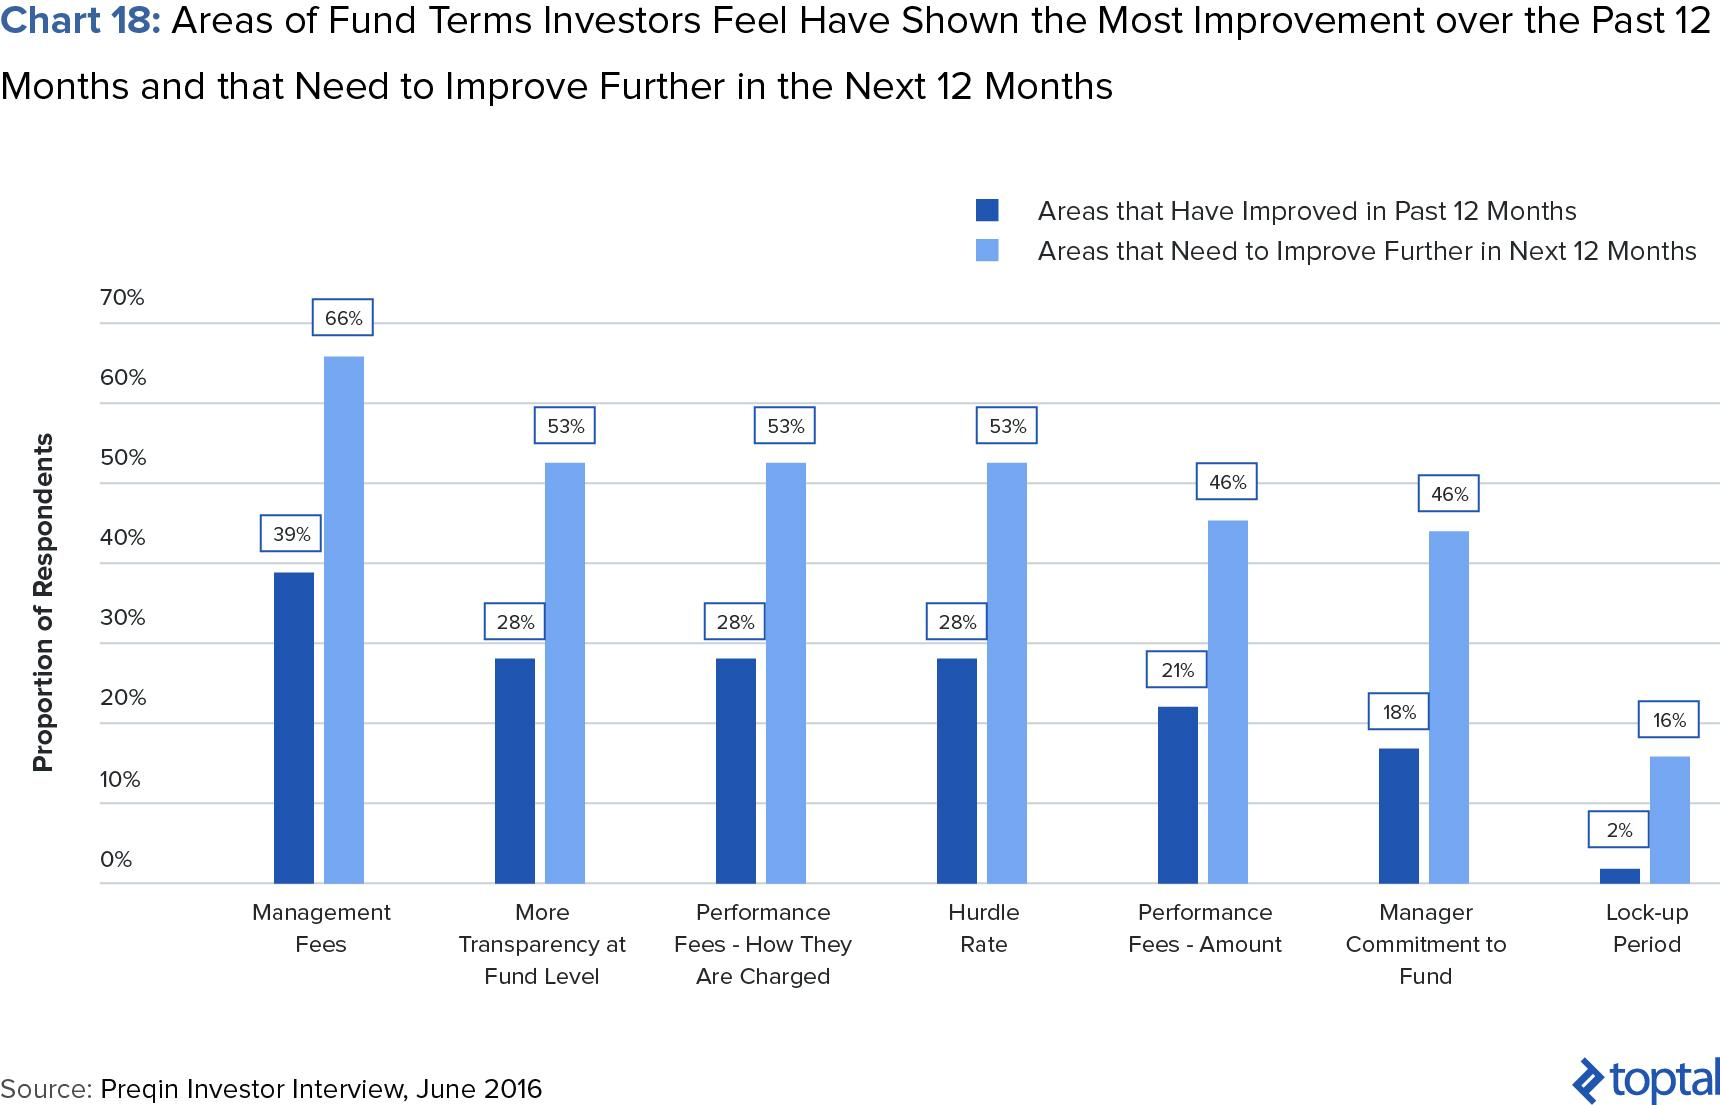 Chart 18: Areas of Fund Terms Investorys Feel Have Shown the Most Improvement over the Past 12 Months and That Need to Improve further in the Next 12 Months